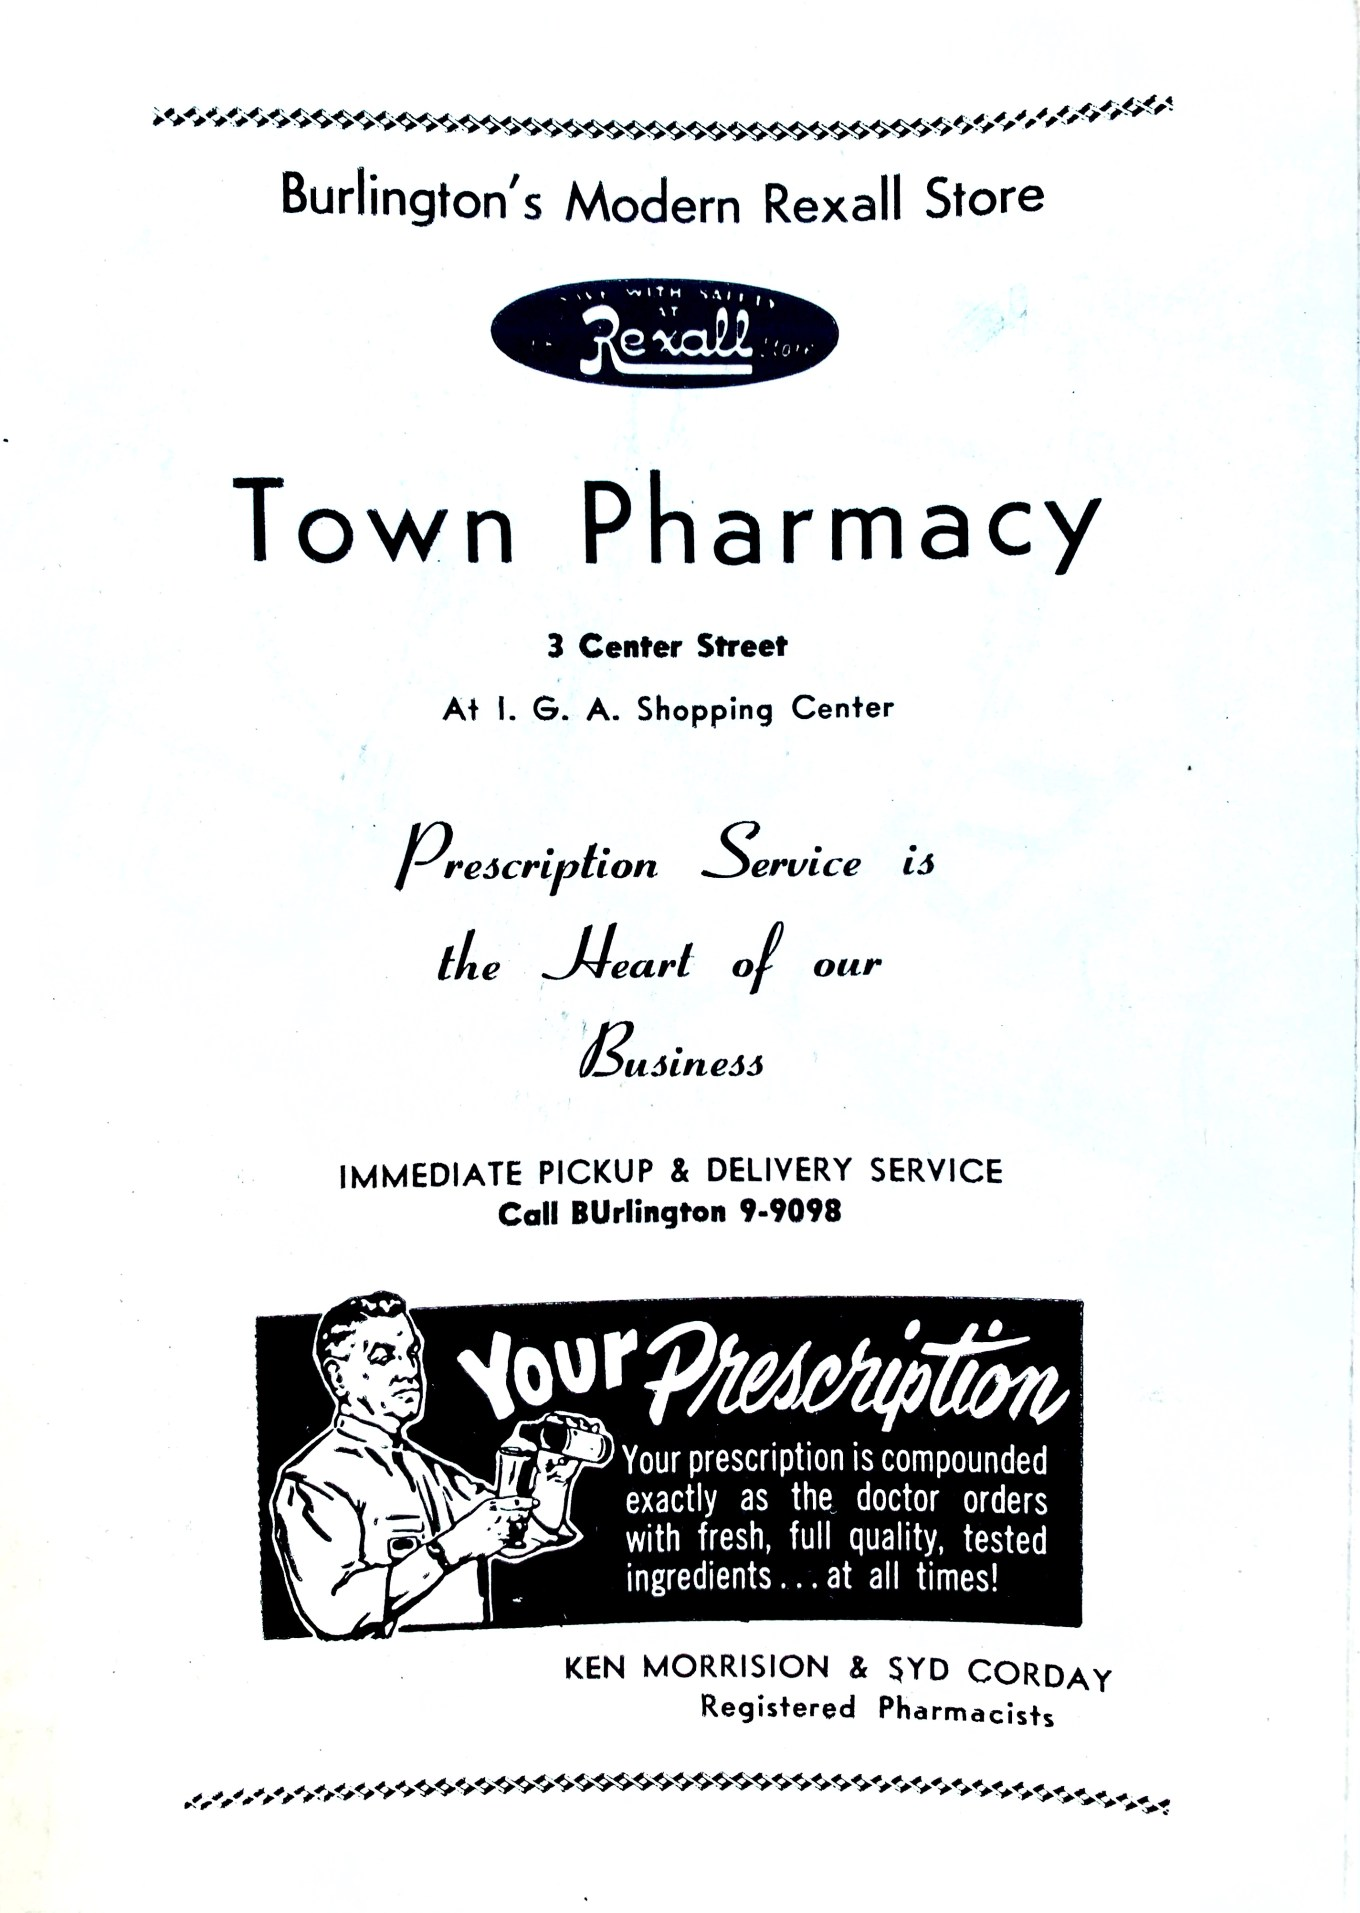 Town Pharmacy/Rexall ad 1956 Burlington MA